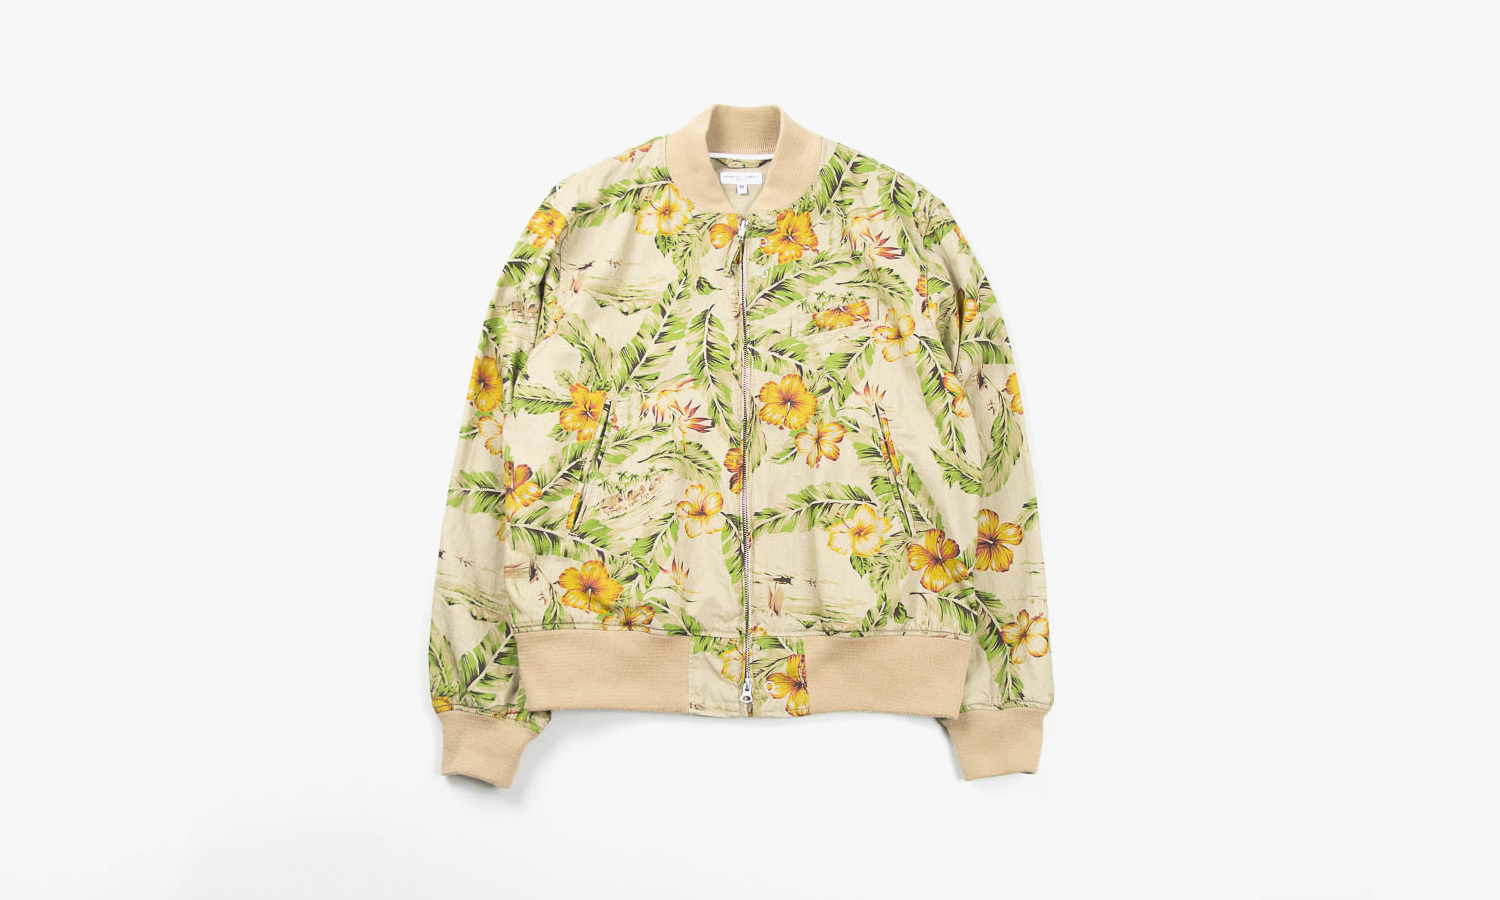 Engineered-Garments-Spring-2015-Aviator-Jacket-featured-16